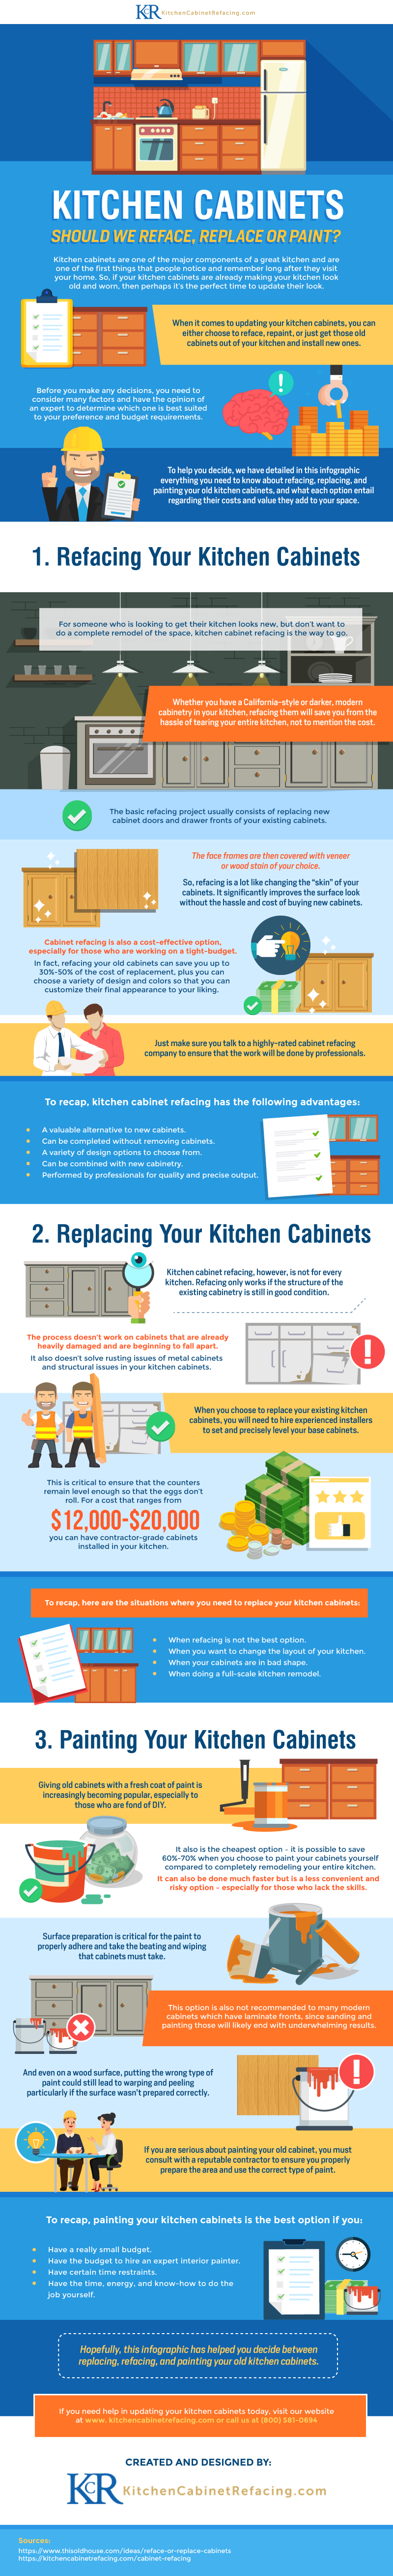 Kitchen Cabinets - Should we Reface, Replace or Paint-01.png